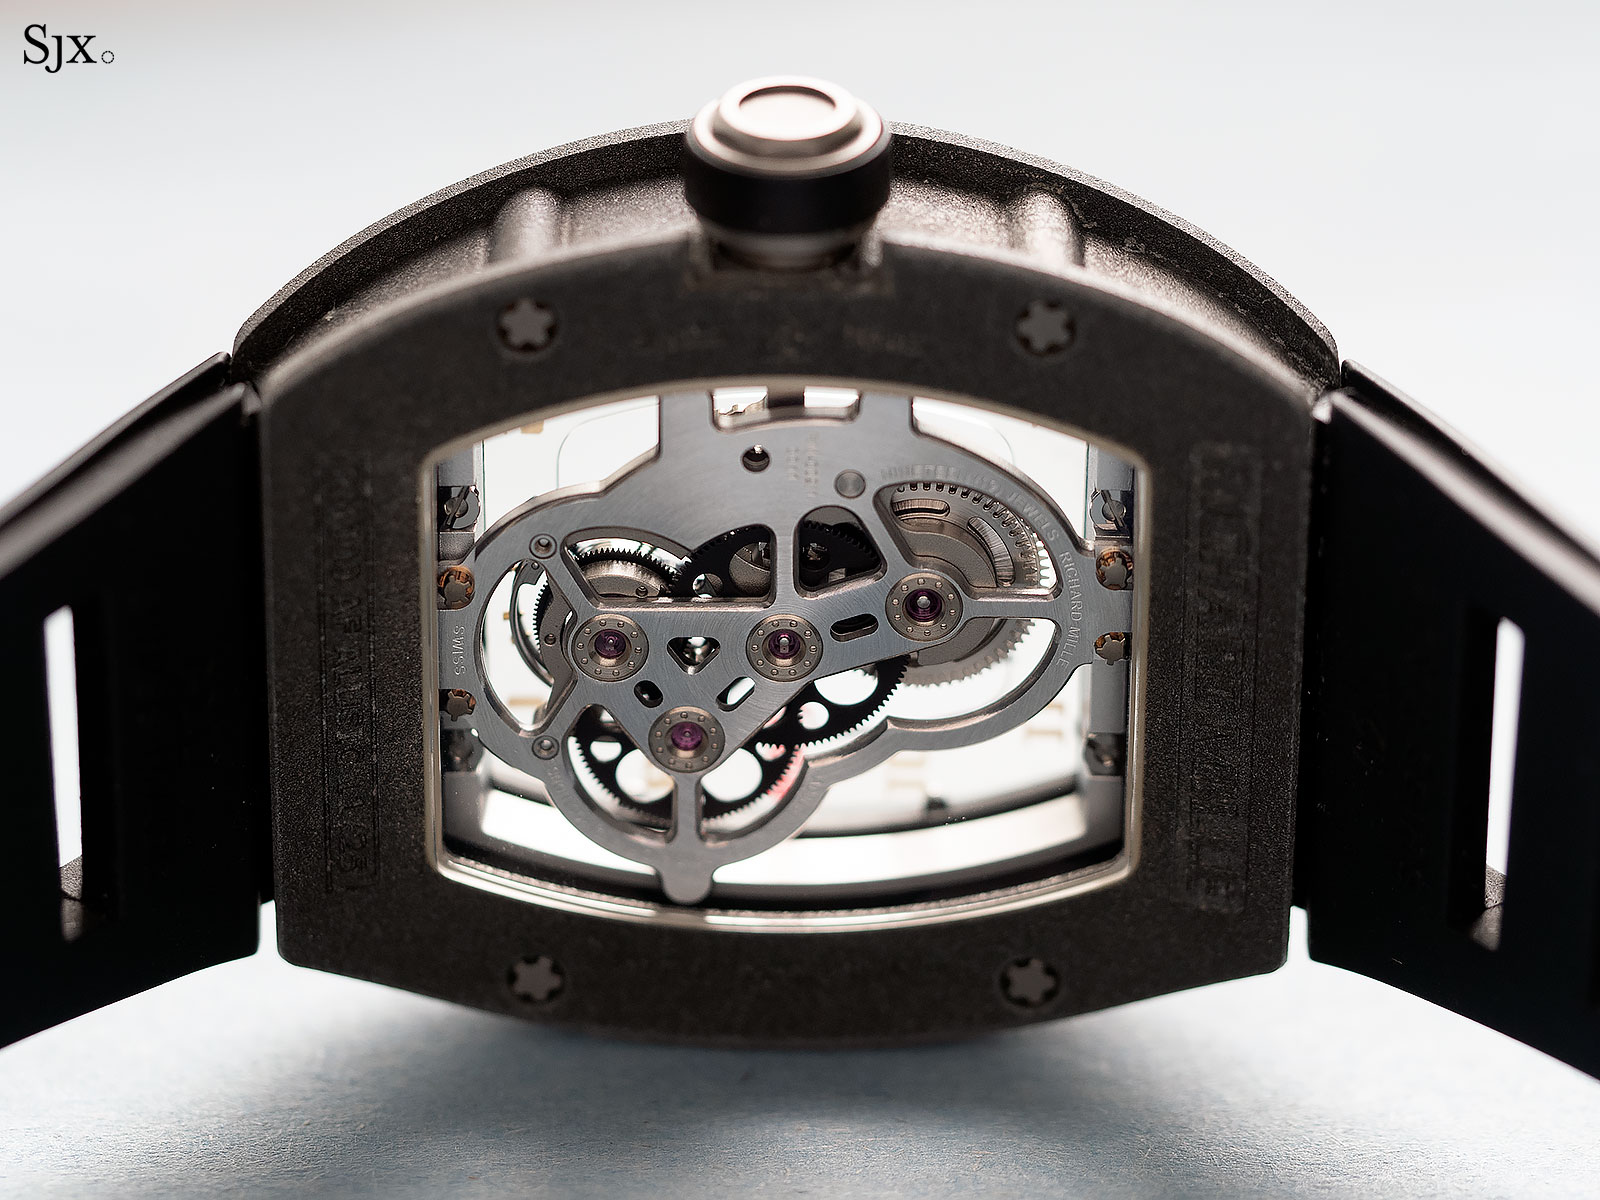 Richard Mille RM009 Alusic tourbillon 12